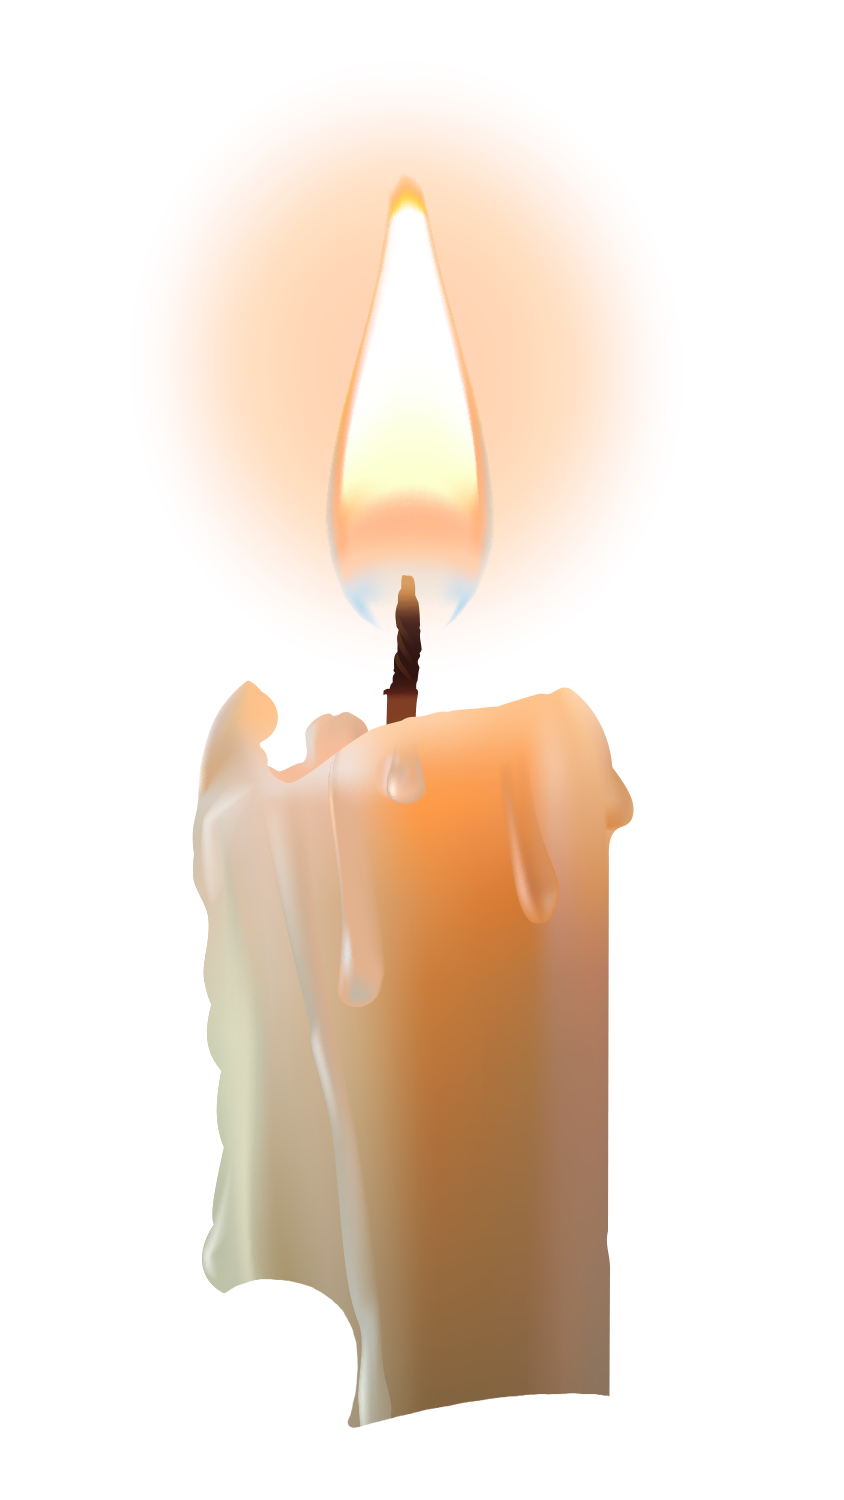 Candle Computer file.